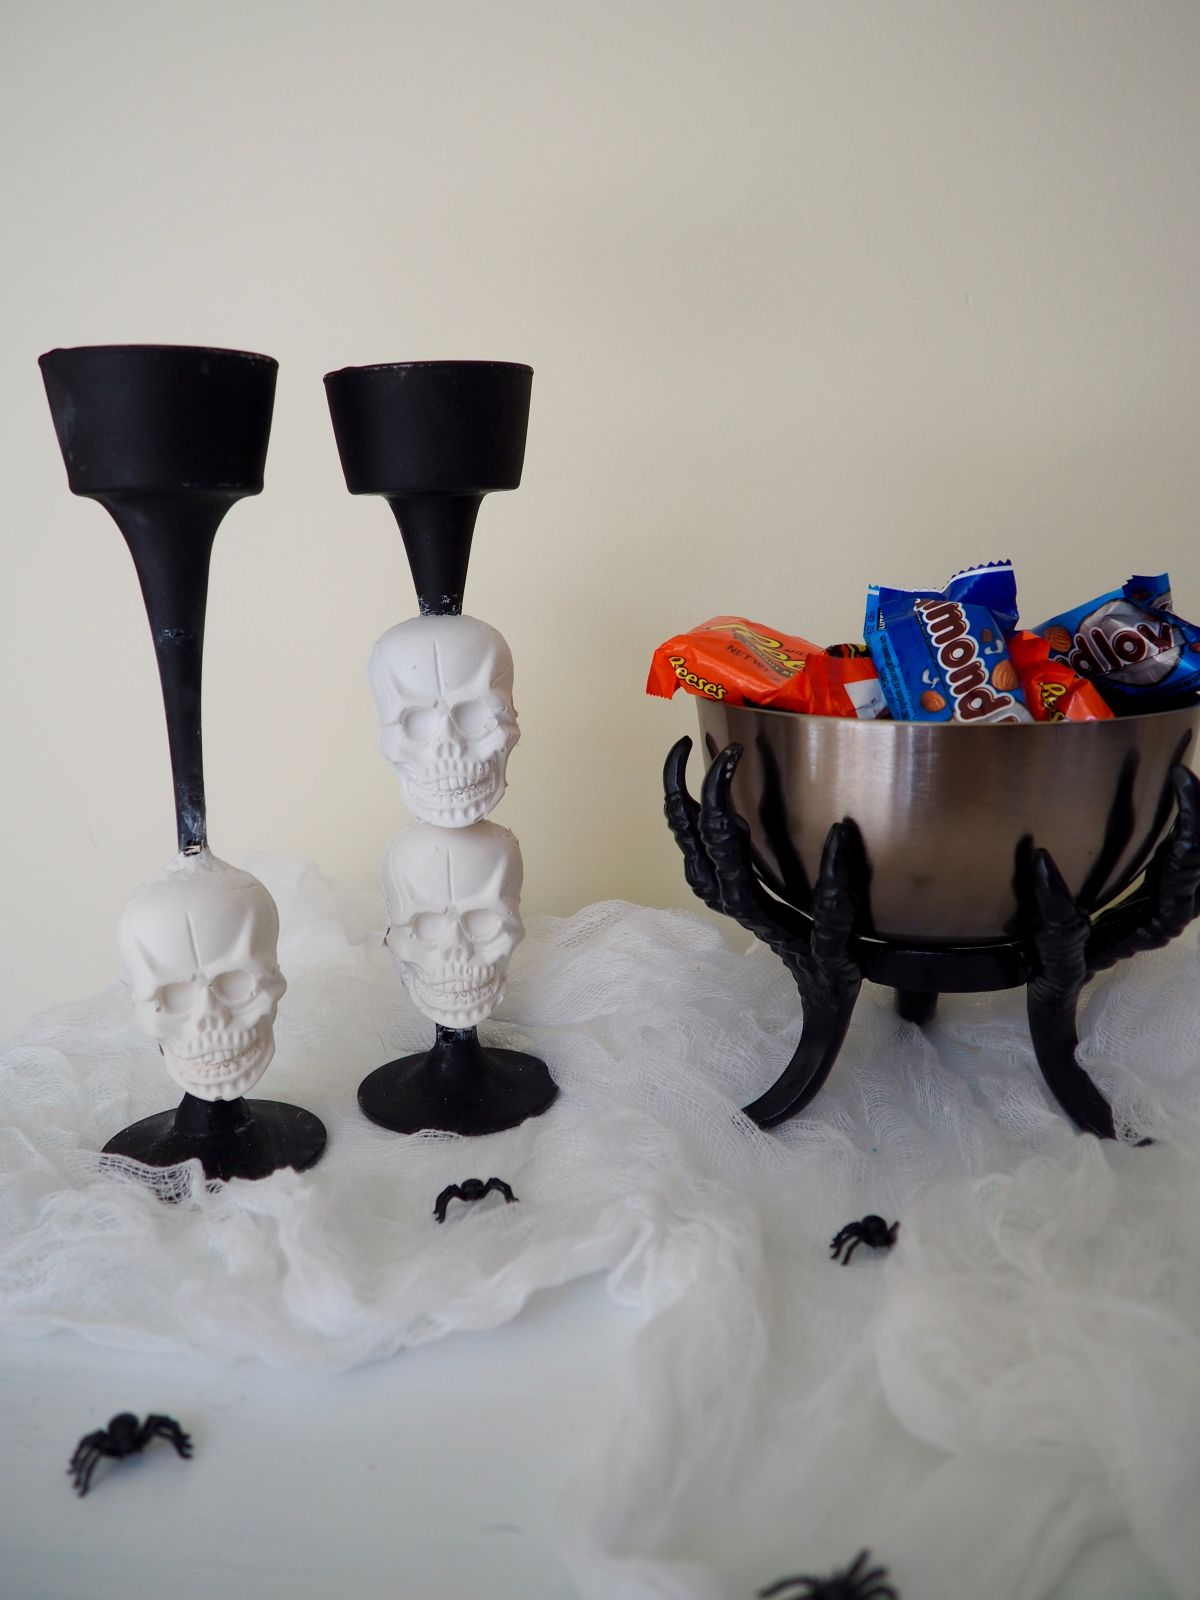 1571127052 212 diy halloween candle projects with spooky designs - DIY Halloween Candle Projects With Spooky Designs